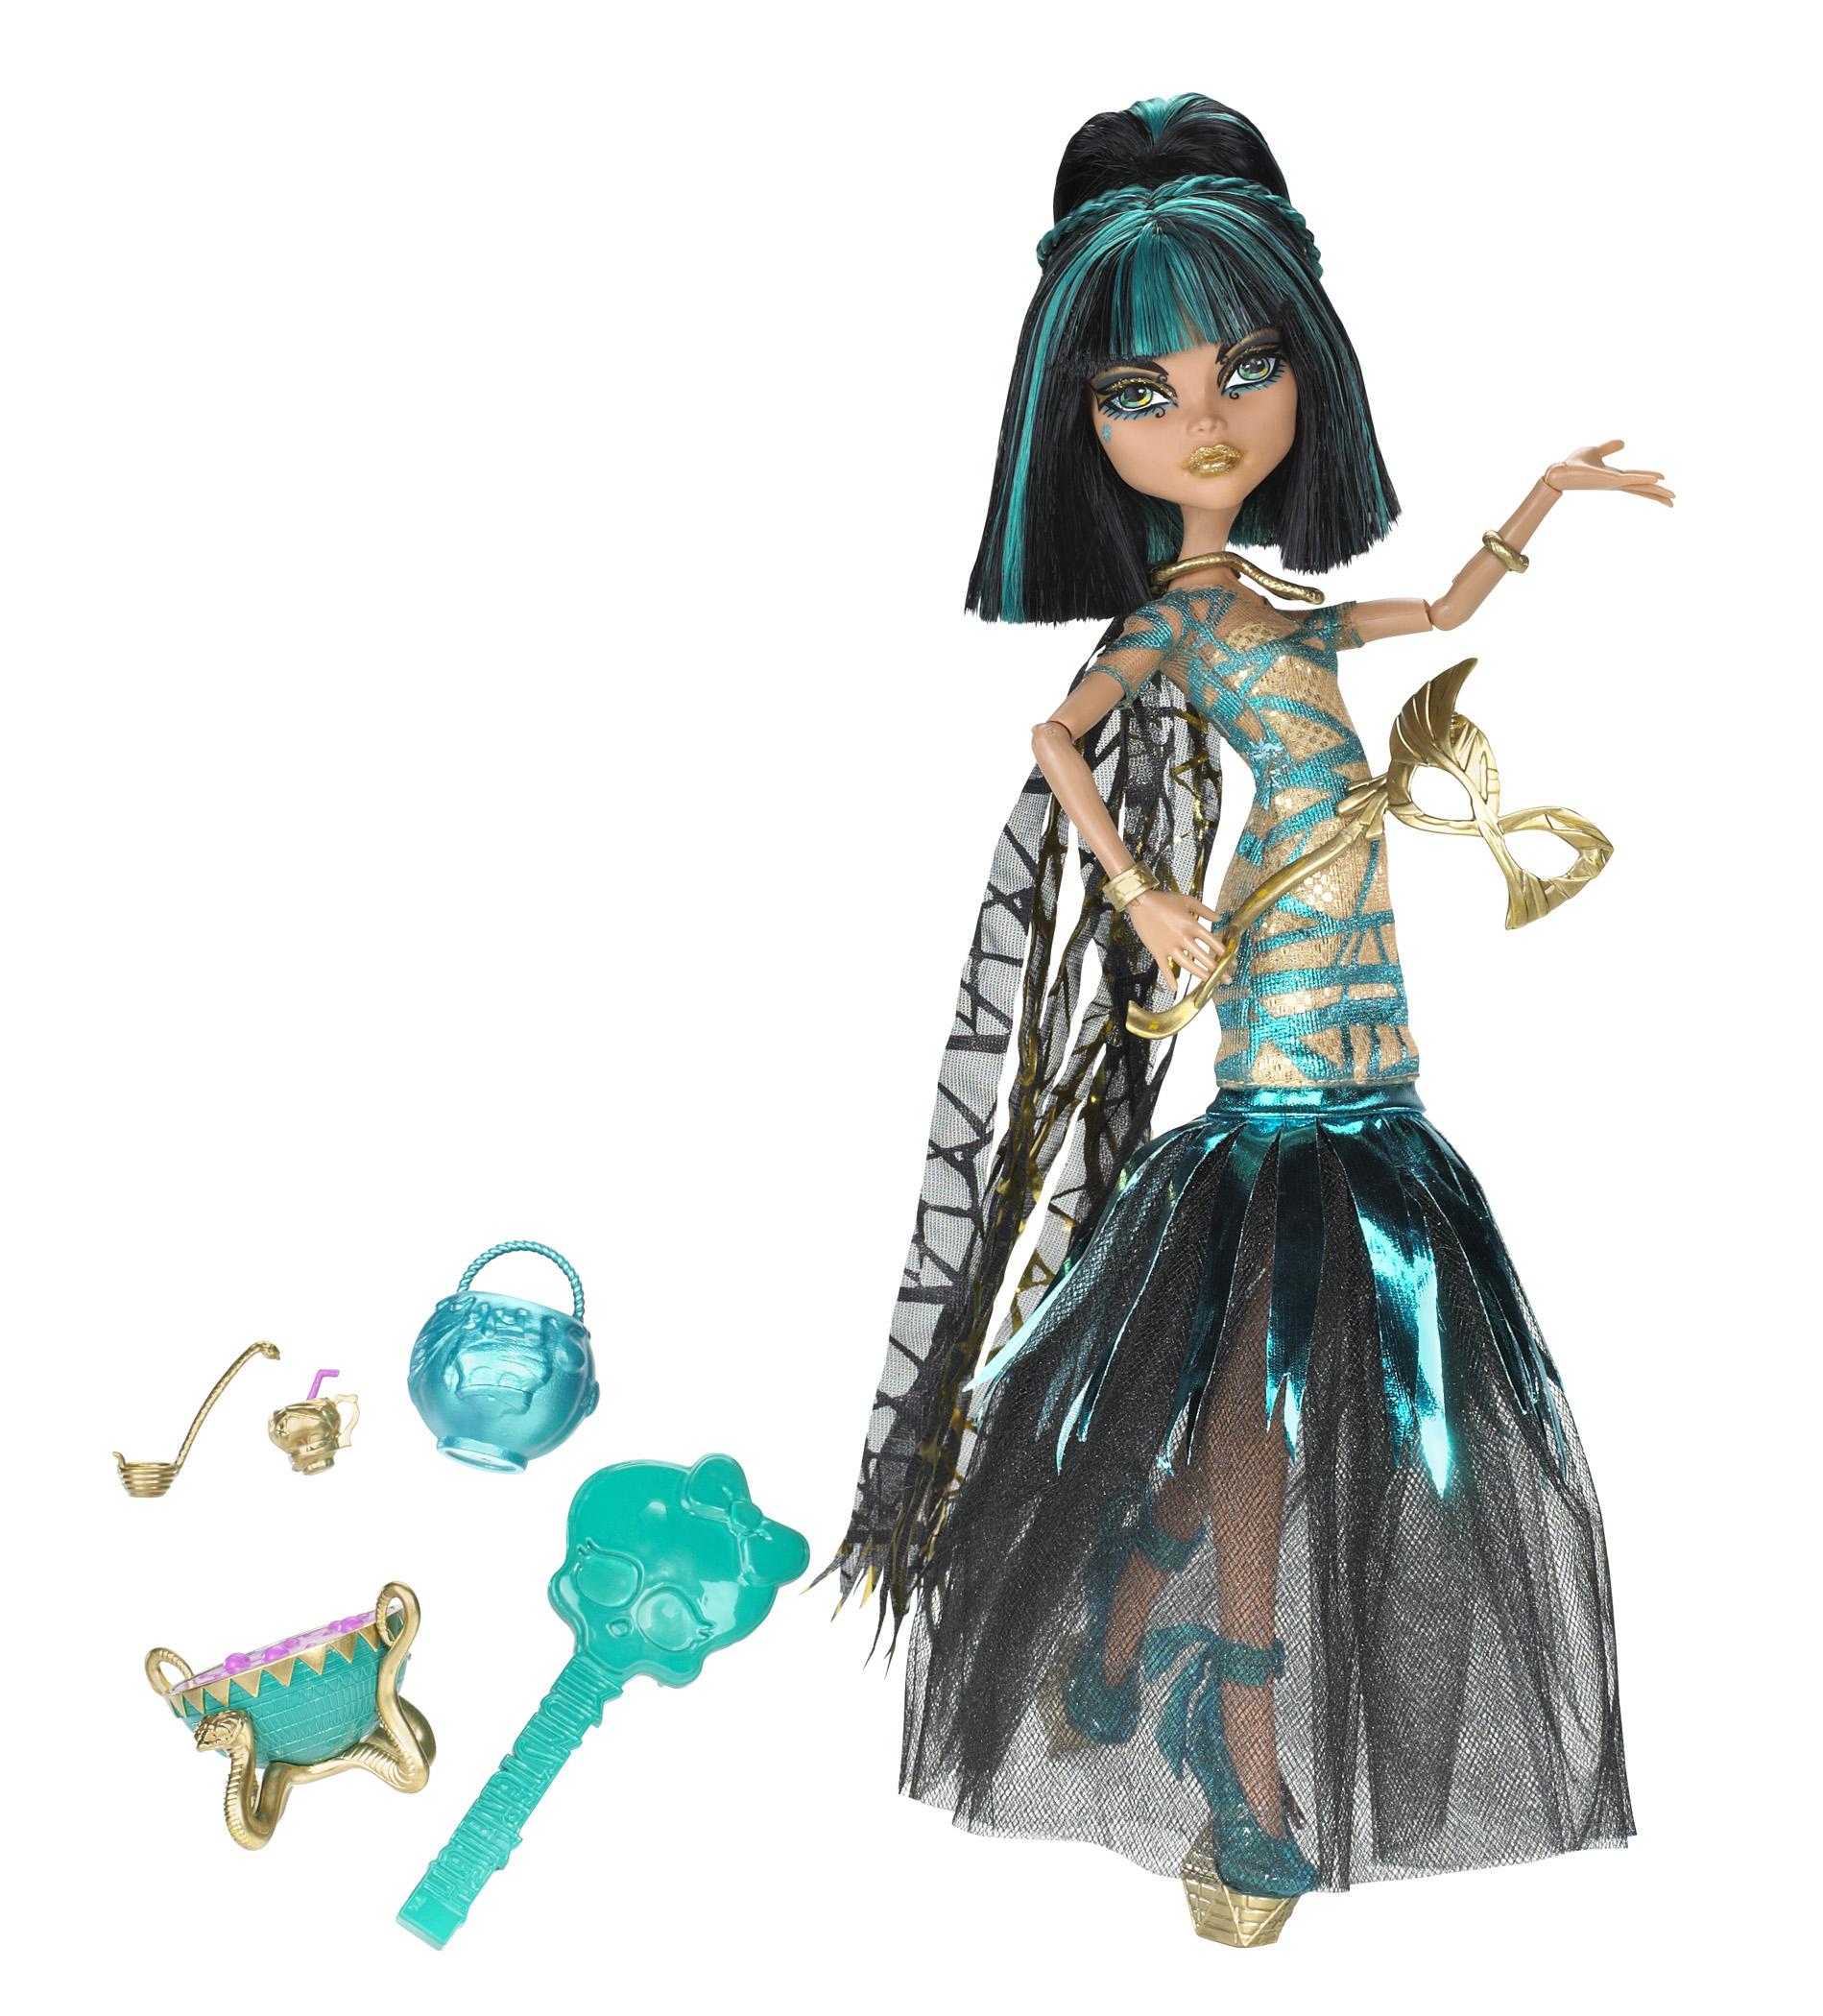 Monster high is awesome images monster high ghouls rule dolls movie coming out fall hd - Image monster high ...